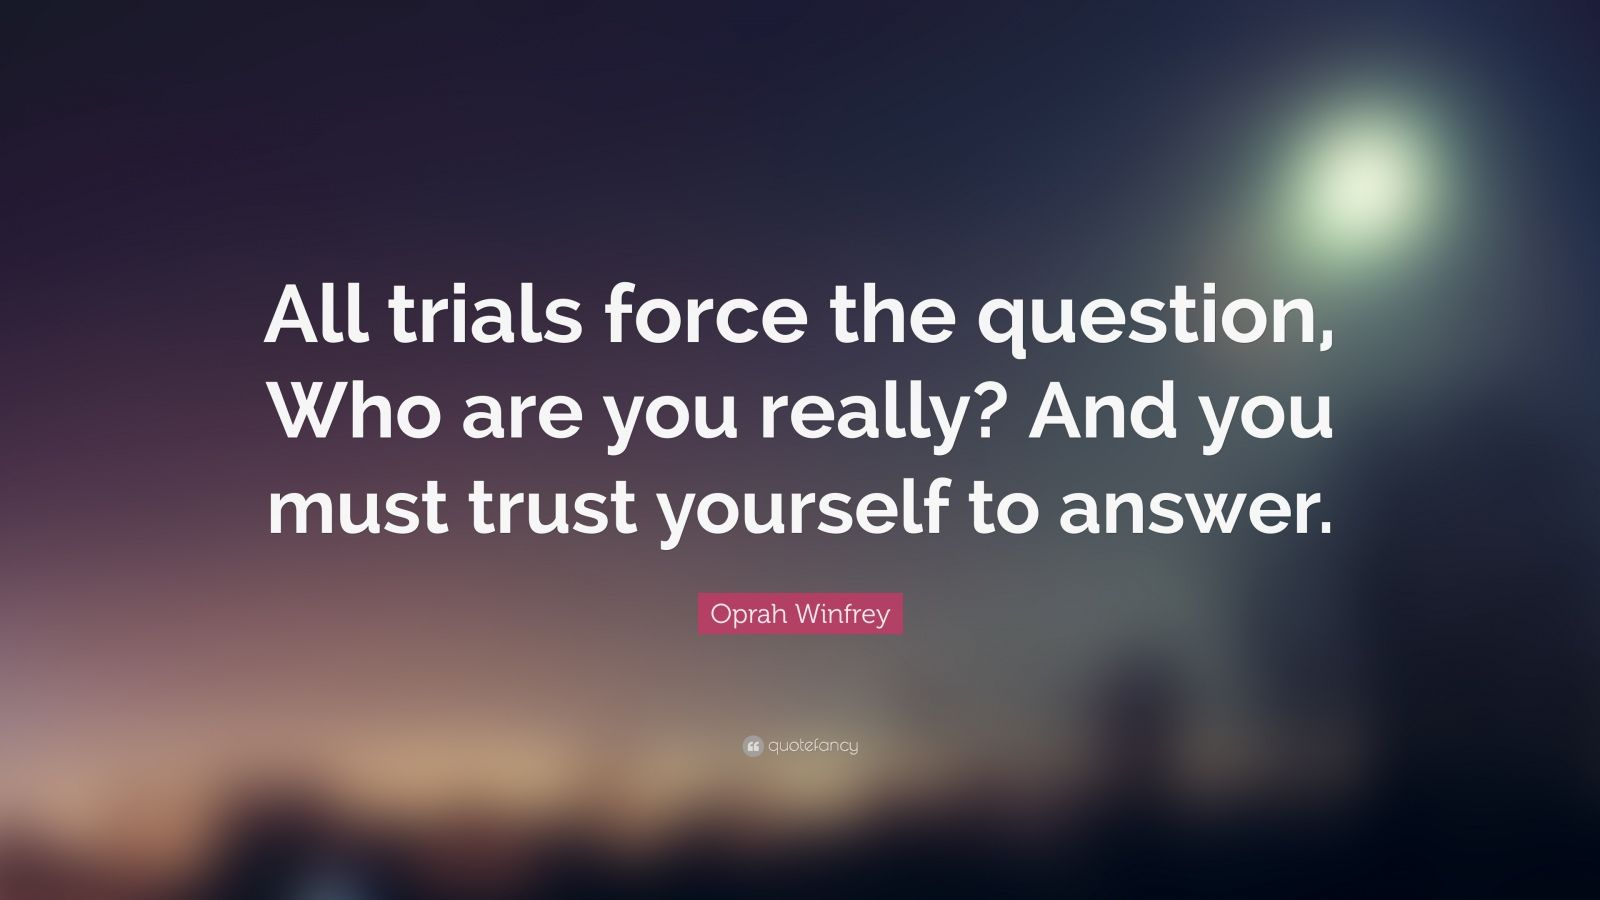 """Oprah Winfrey Quote: """"All trials force the question, Who are you really? And you must trust yourself to answer."""""""